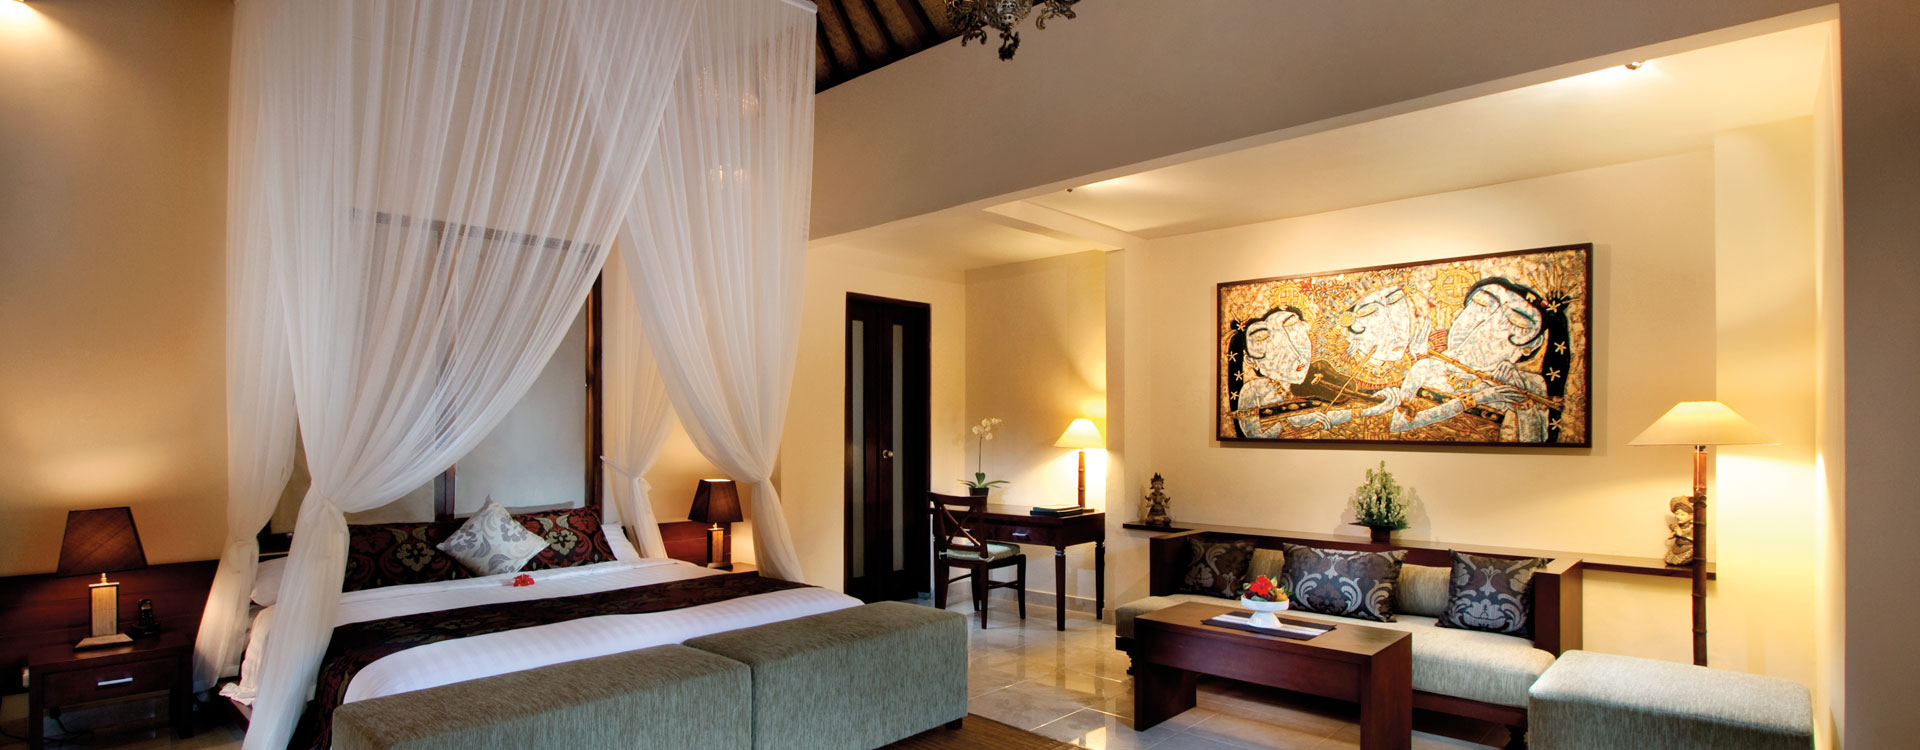 Cat Interior Terbaik Bebek Tepi Sawah Restaurant And Villas A Boutique Villas In Ubud